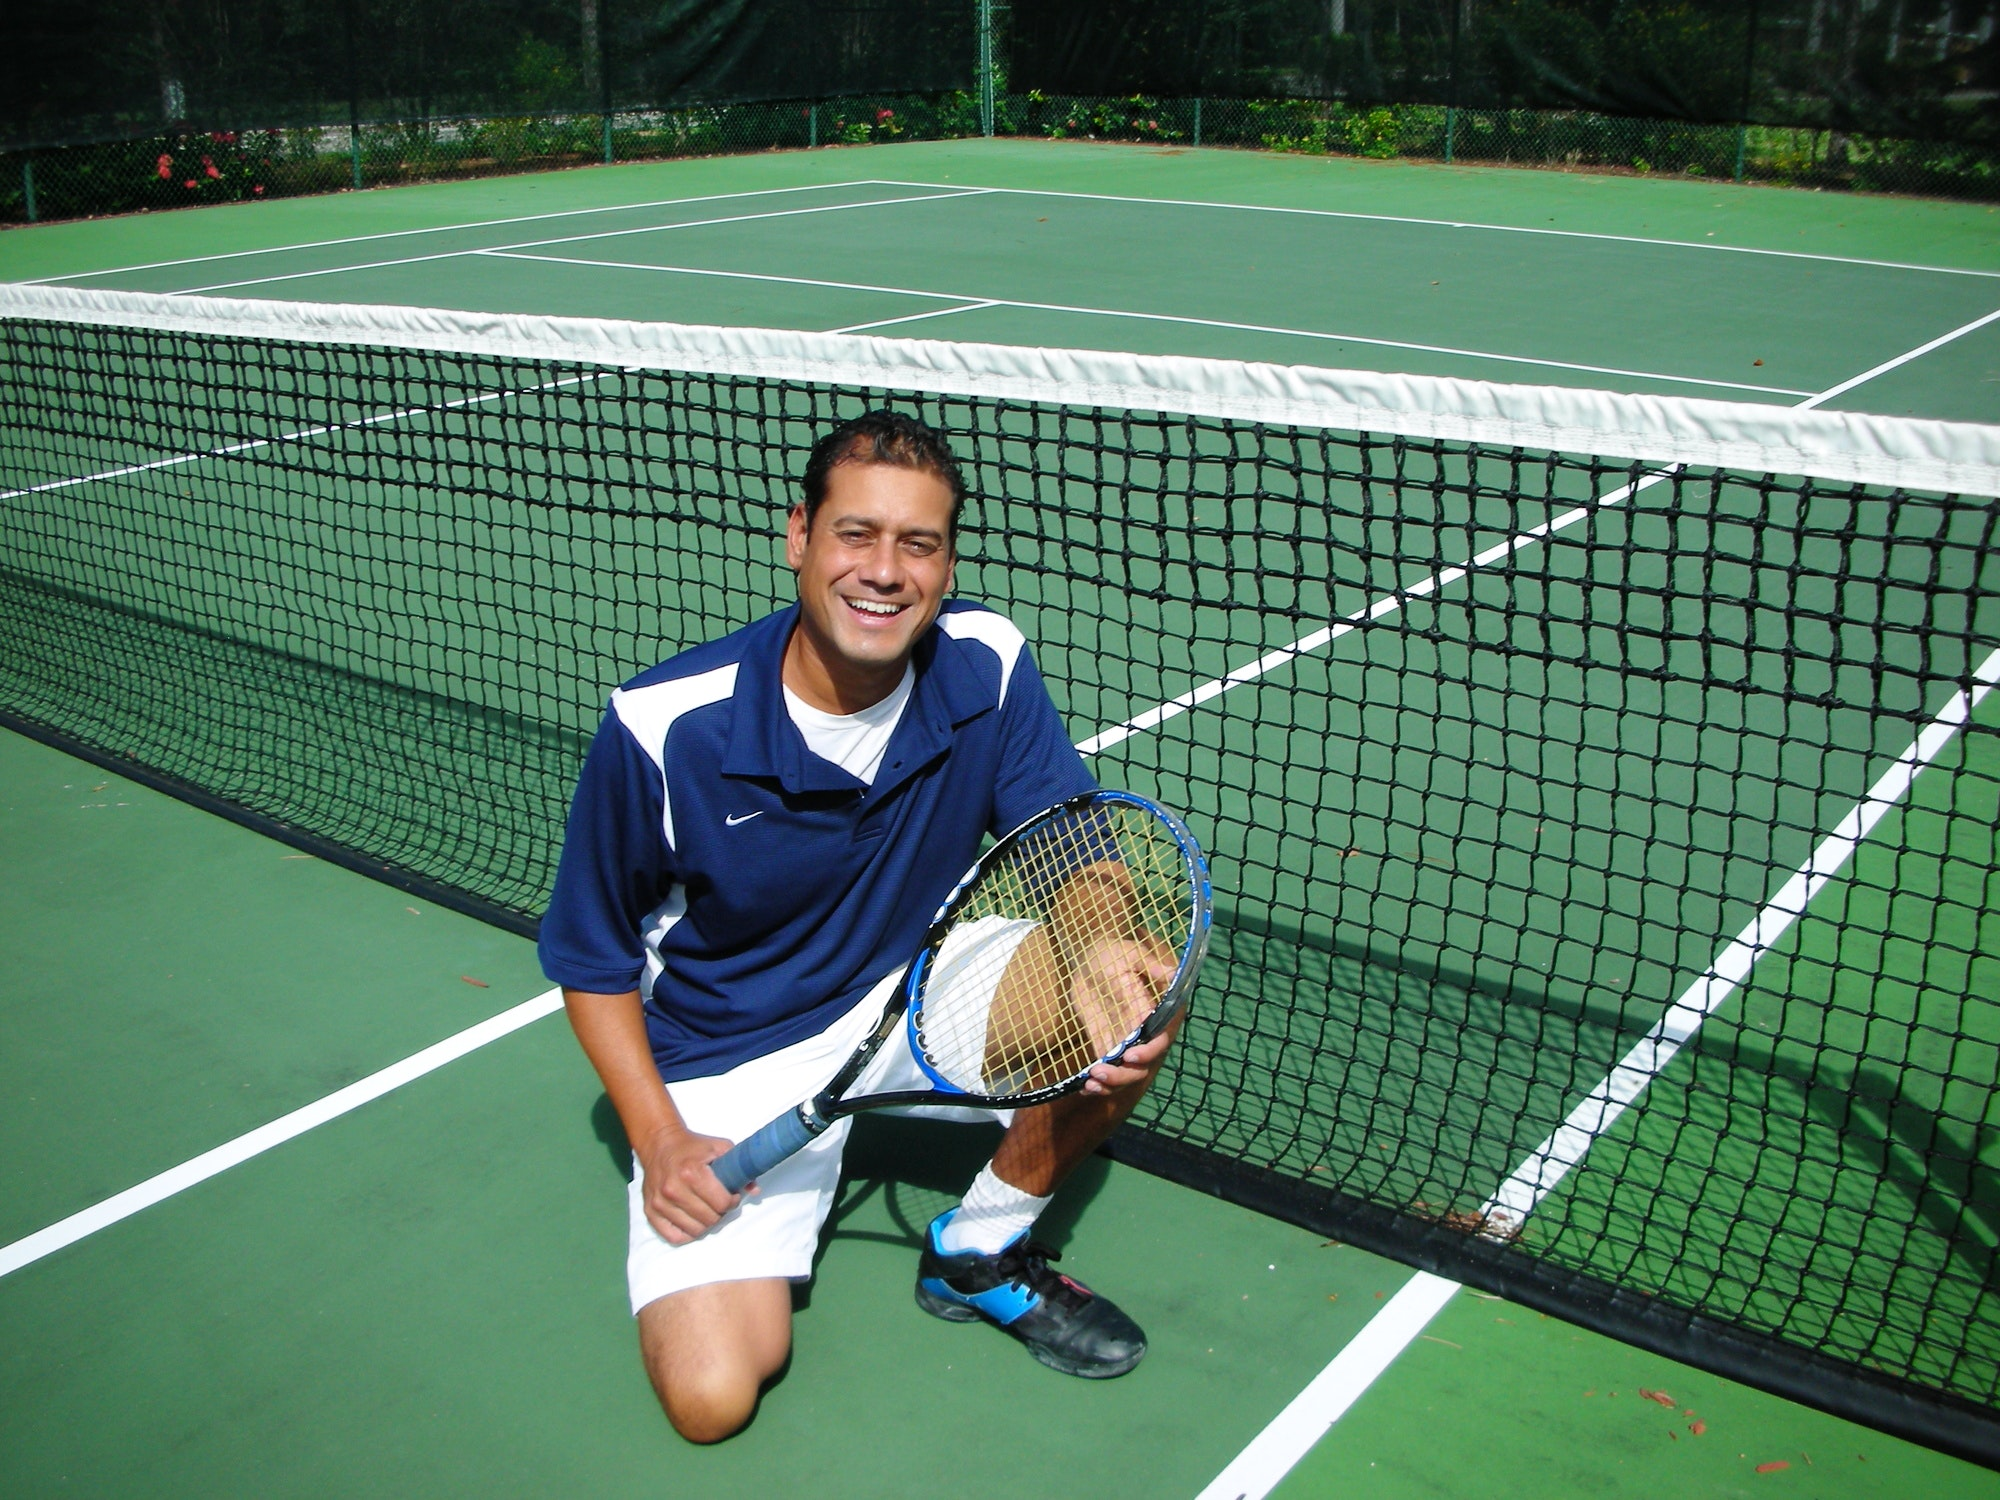 Reto G. teaches tennis lessons in San Antonio, FL